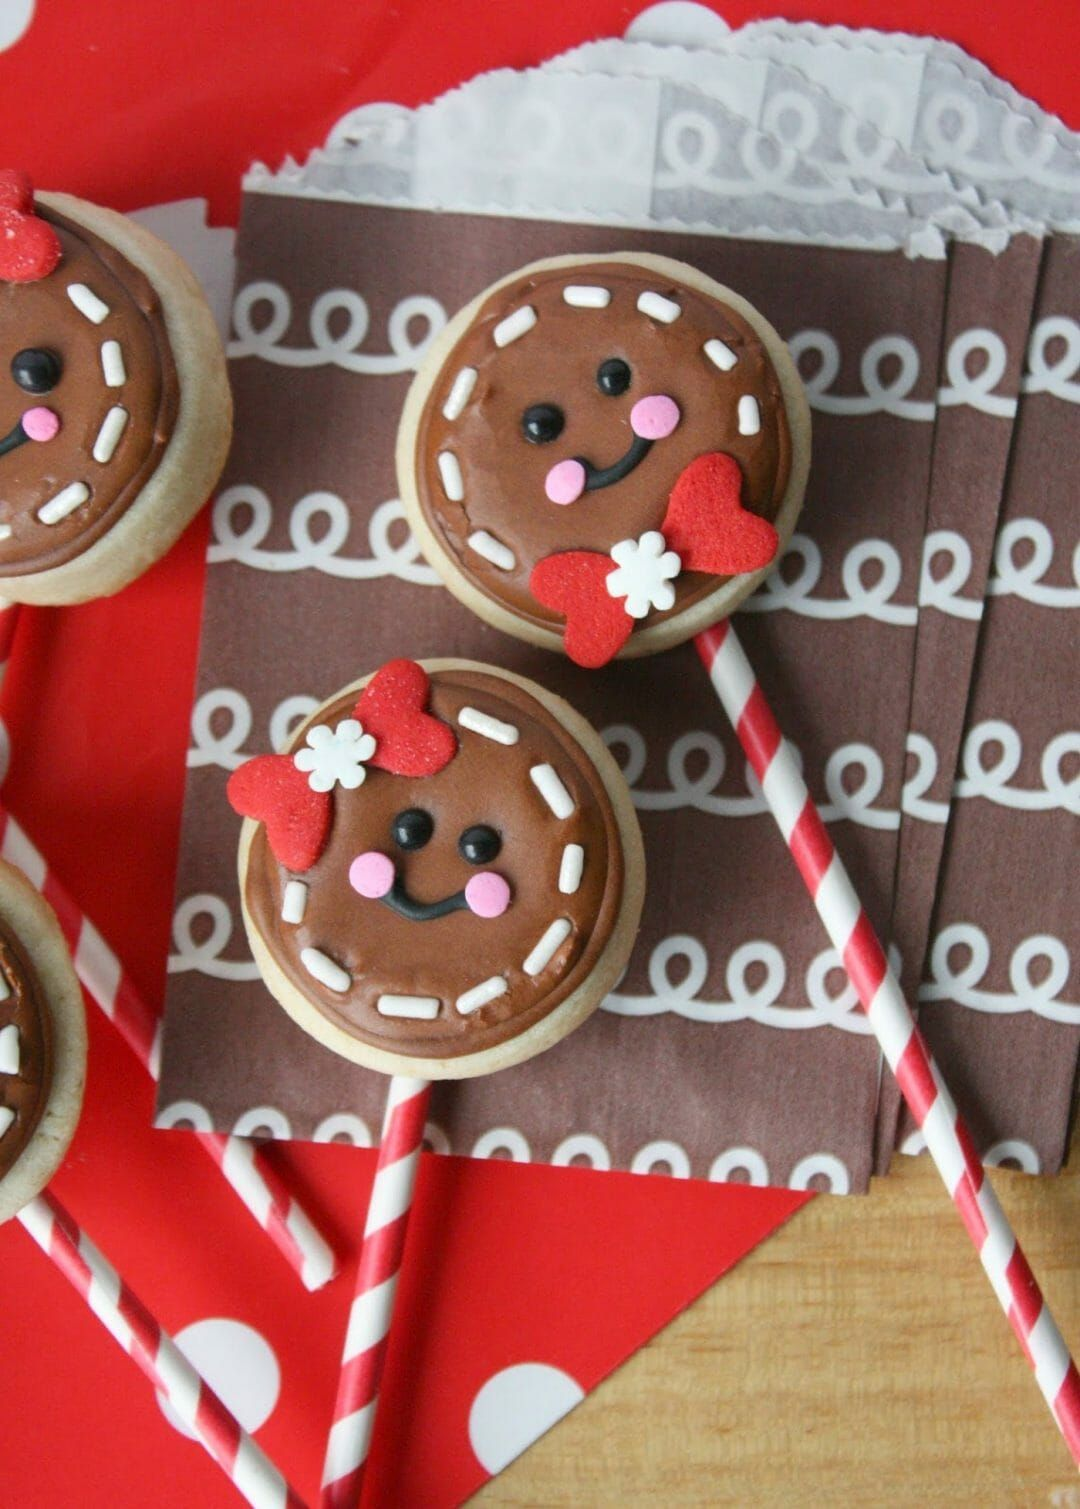 25+ Best Easy Christmas Cookies Recipes to try this year! | Gingerbread Man Sugap Cookie Pops | Image © Munchkin Munchies | Looking for Christmas cookie ideas for a party or cookie exchange? Whether you want easy Christmas cookies recipes for kids (like homemade cookies and no-bake), fancy cookies (like slice-and-bake and dipped cookies), or unique Christmas cookies that will truly impress, you'll find them here! #christmascookies #christmascookierecipes #christmascookieexchange #sliceandbakecookies